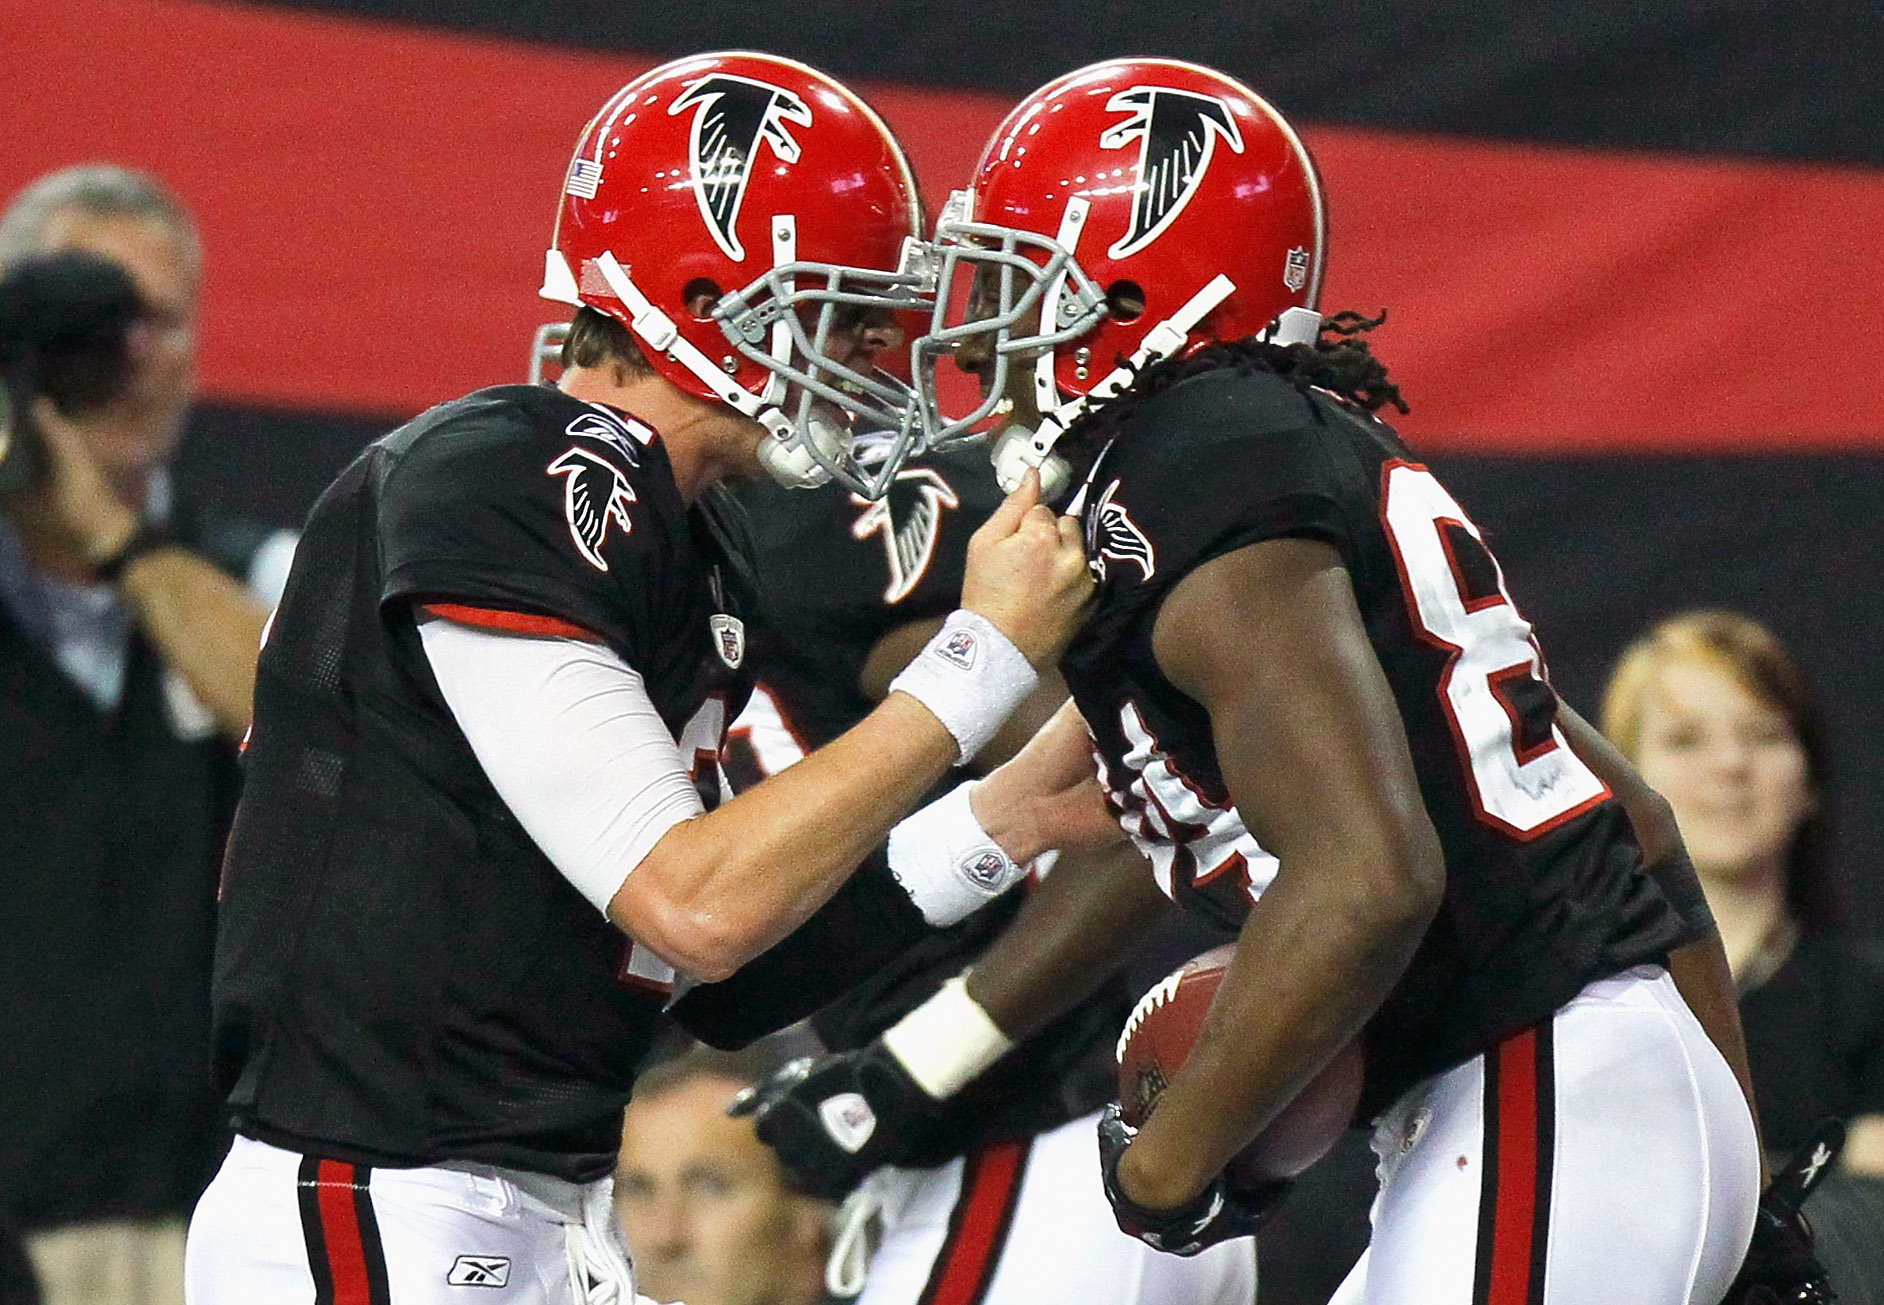 ATLANTA - NOVEMBER 11:  Quarterback Matt Ryan #2 and Roddy White #84 of the Atlanta Falcons react after White's touchdown reception in the final seconds against the Baltimore Ravens at Georgia Dome on November 11, 2010 in Atlanta, Georgia.  (Photo by Kevi